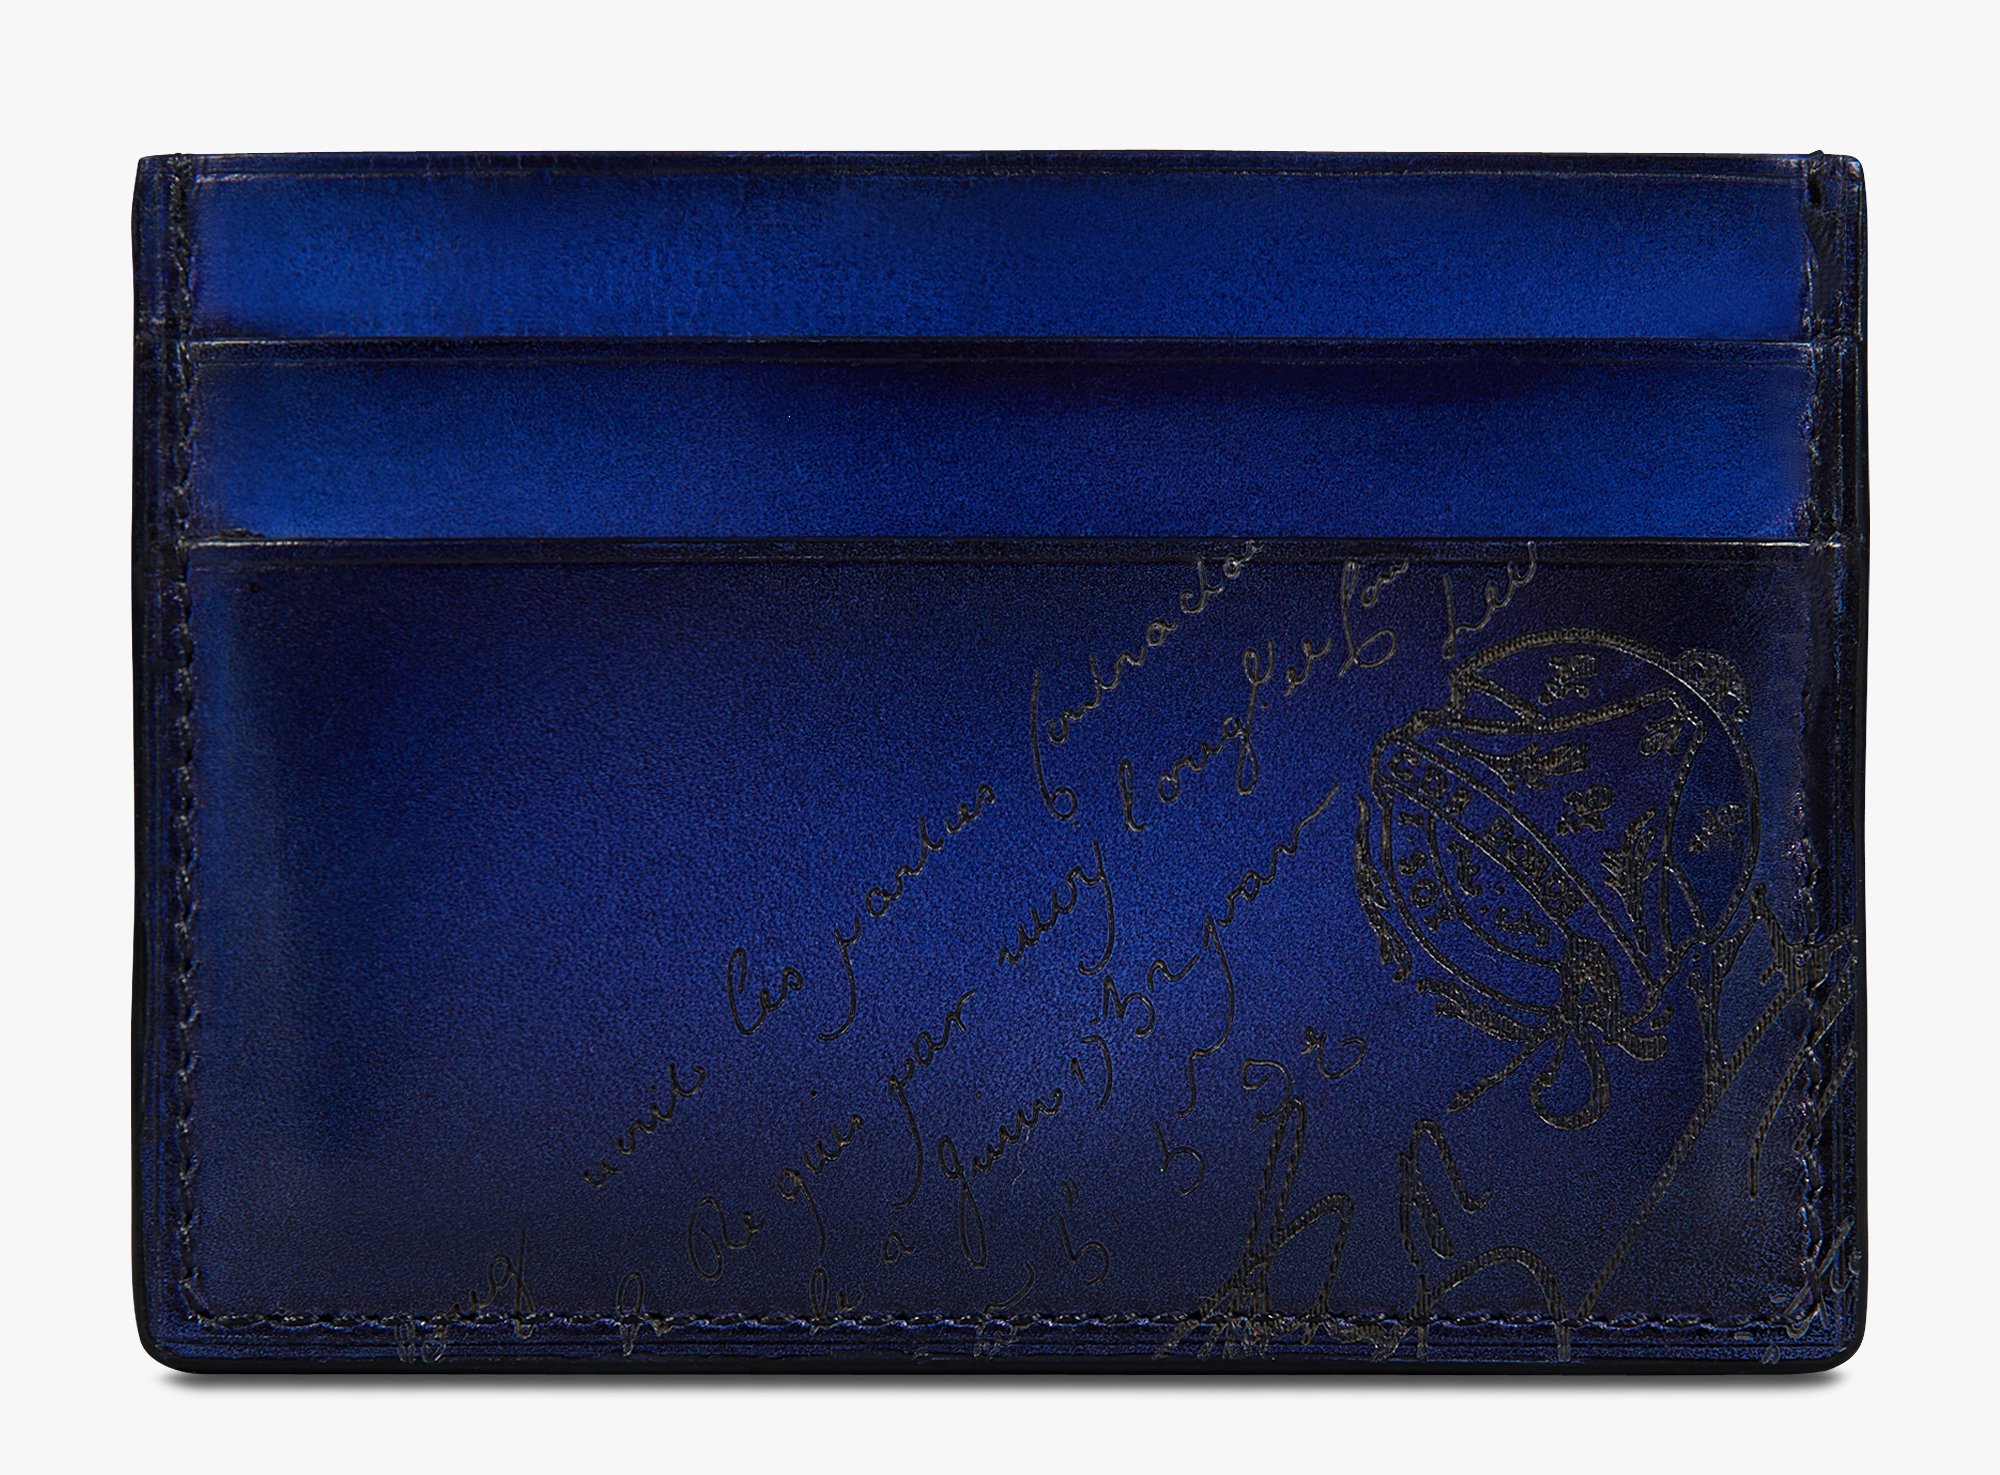 Bambou Scritto Swipe Leather Card Holder, UTOPIA BLUE, hi-res